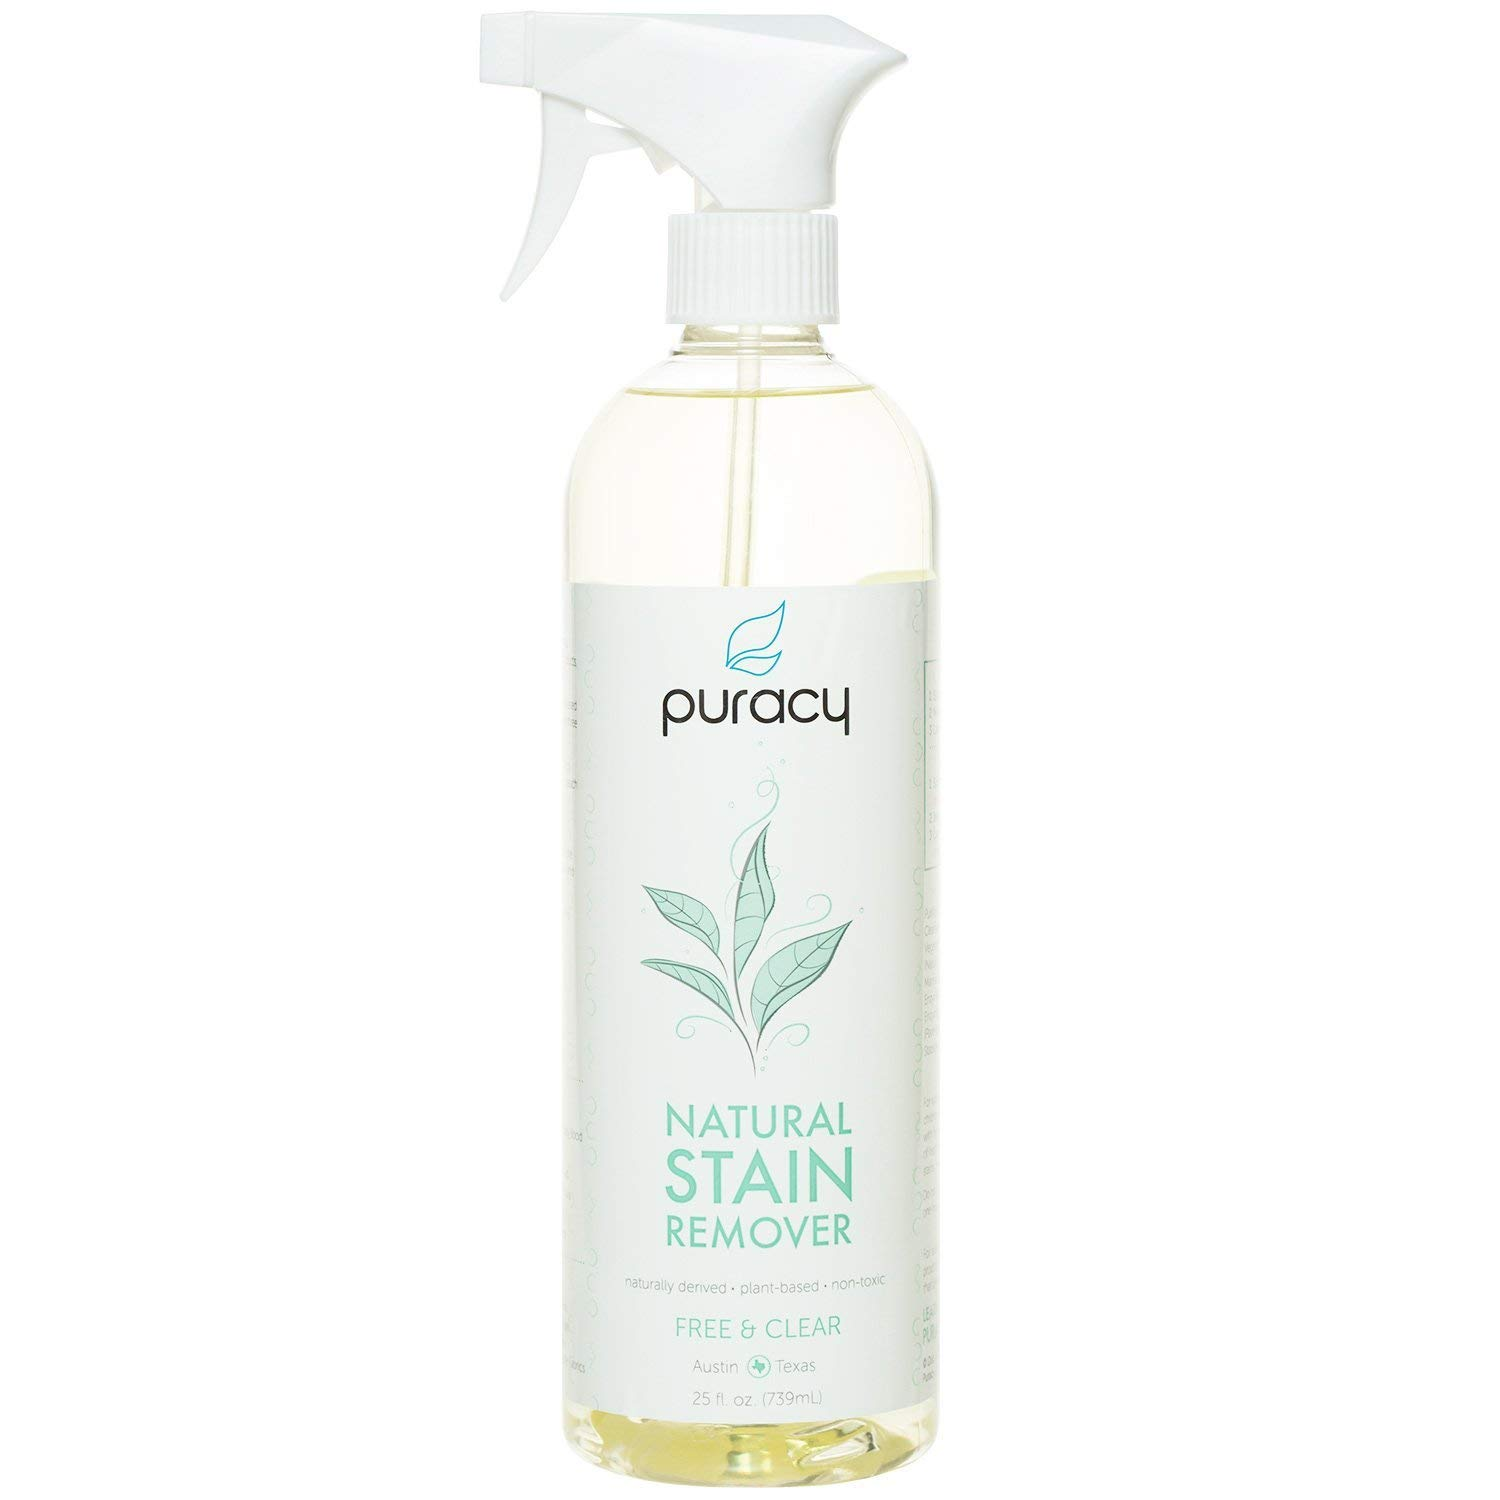 Amazon Best Sellers All-Natural Stain Remover